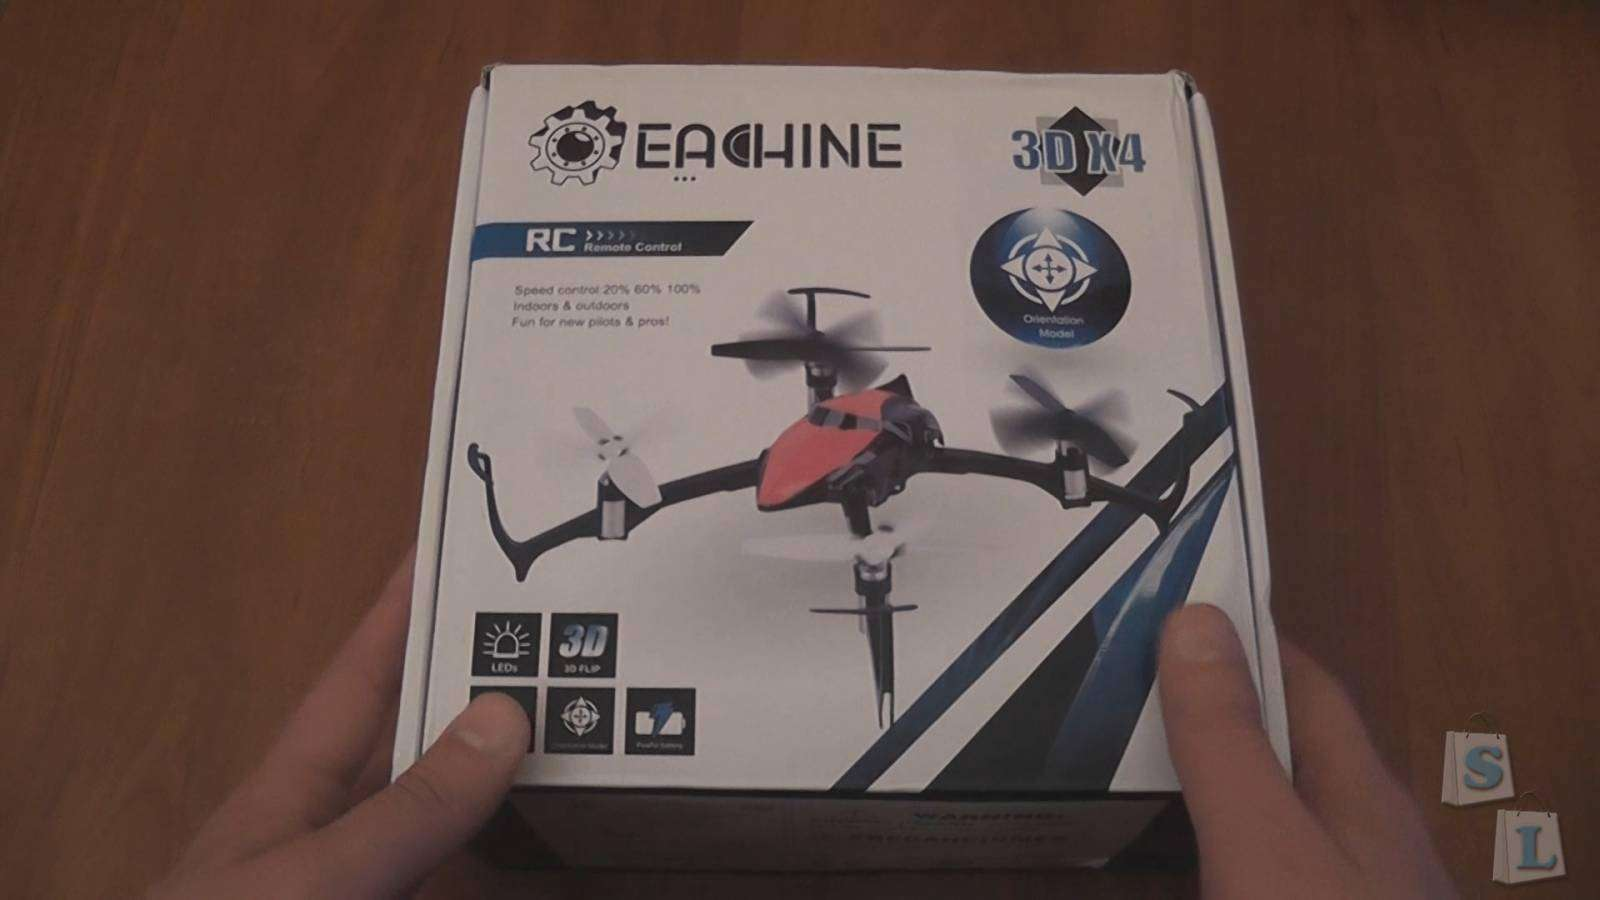 Banggood: Eachine 3D X4 (CG027) 2.4GHz, 4Ch, 6 Axis Gyro, RC Quadcopter with LED (RTF)